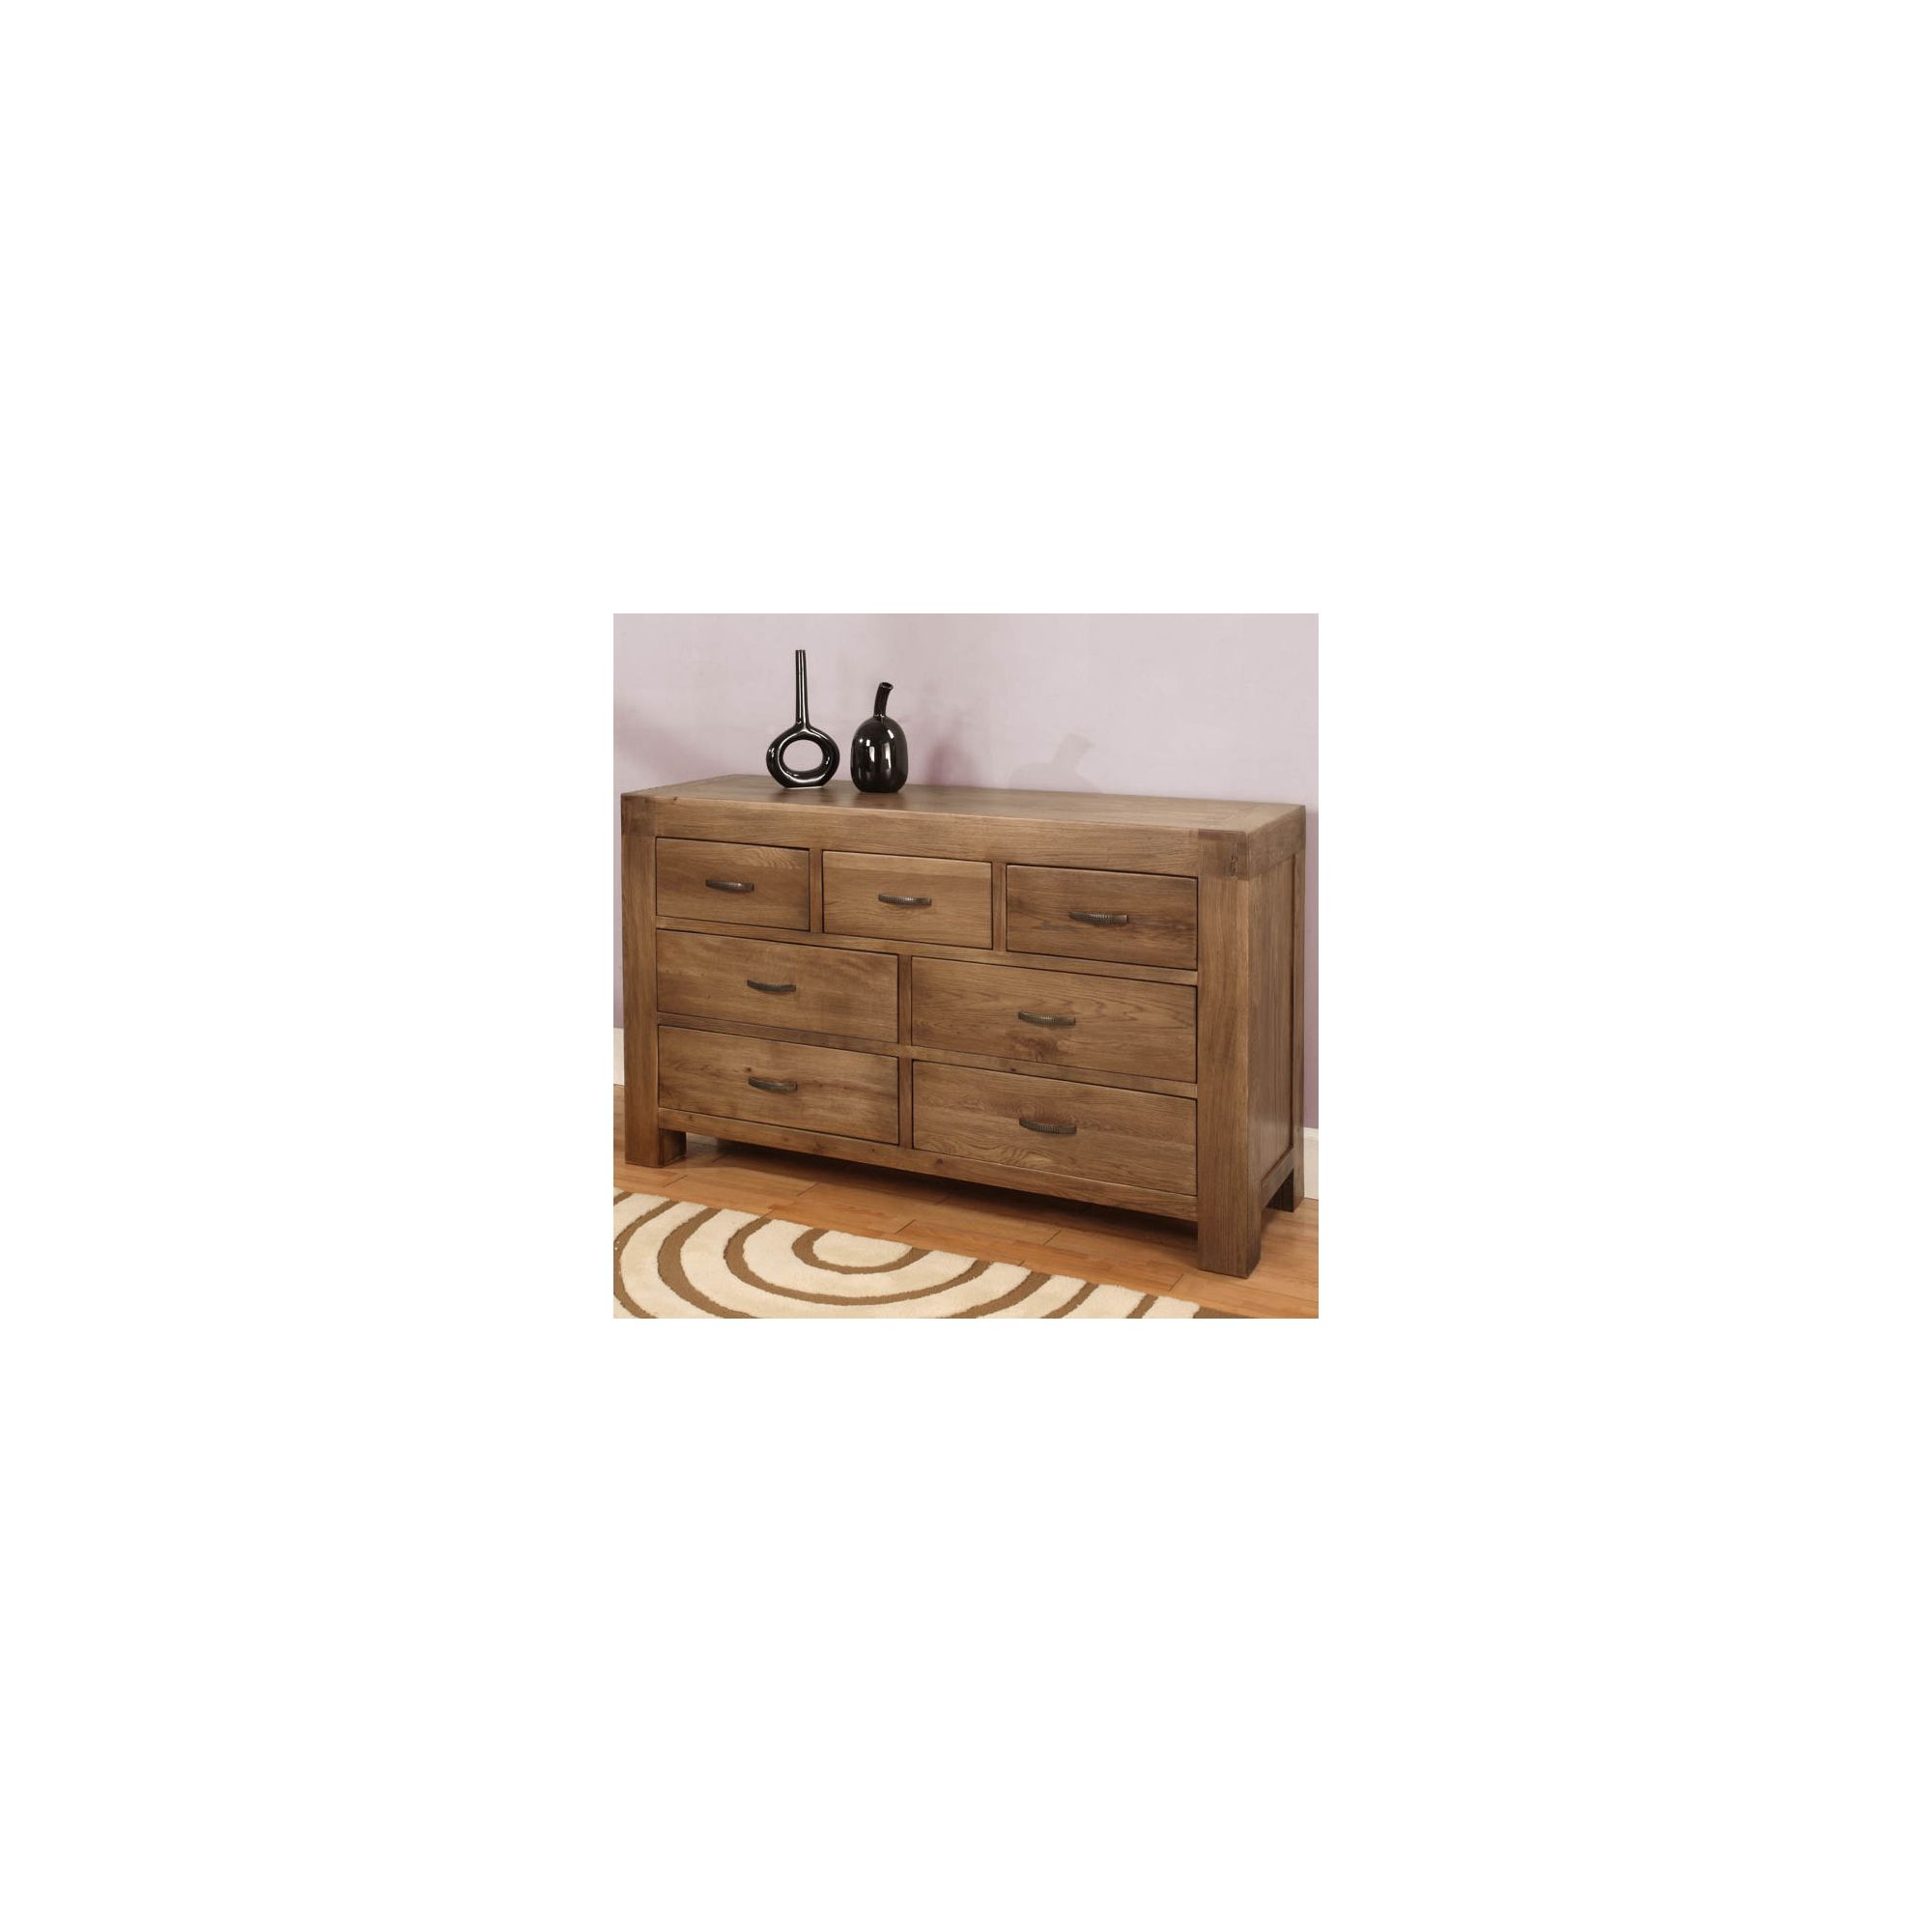 Hawkshead Santana Seven Drawer Chest in Rich Patina at Tesco Direct